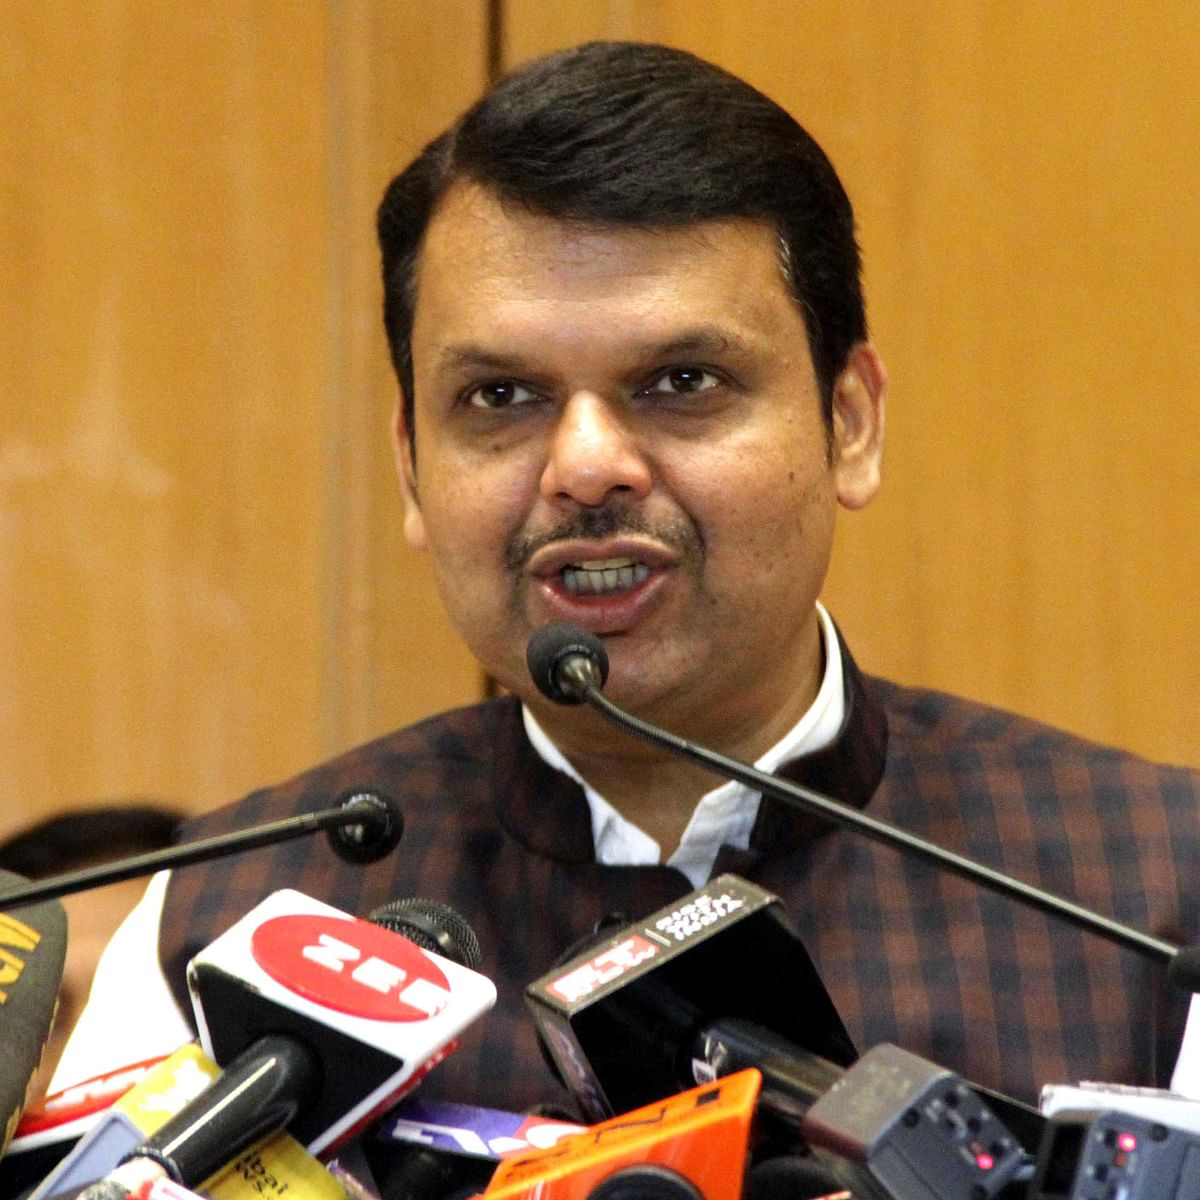 Devendra Fadnavis to take plunge into national politics, assigned big role in Bihar assembly elections